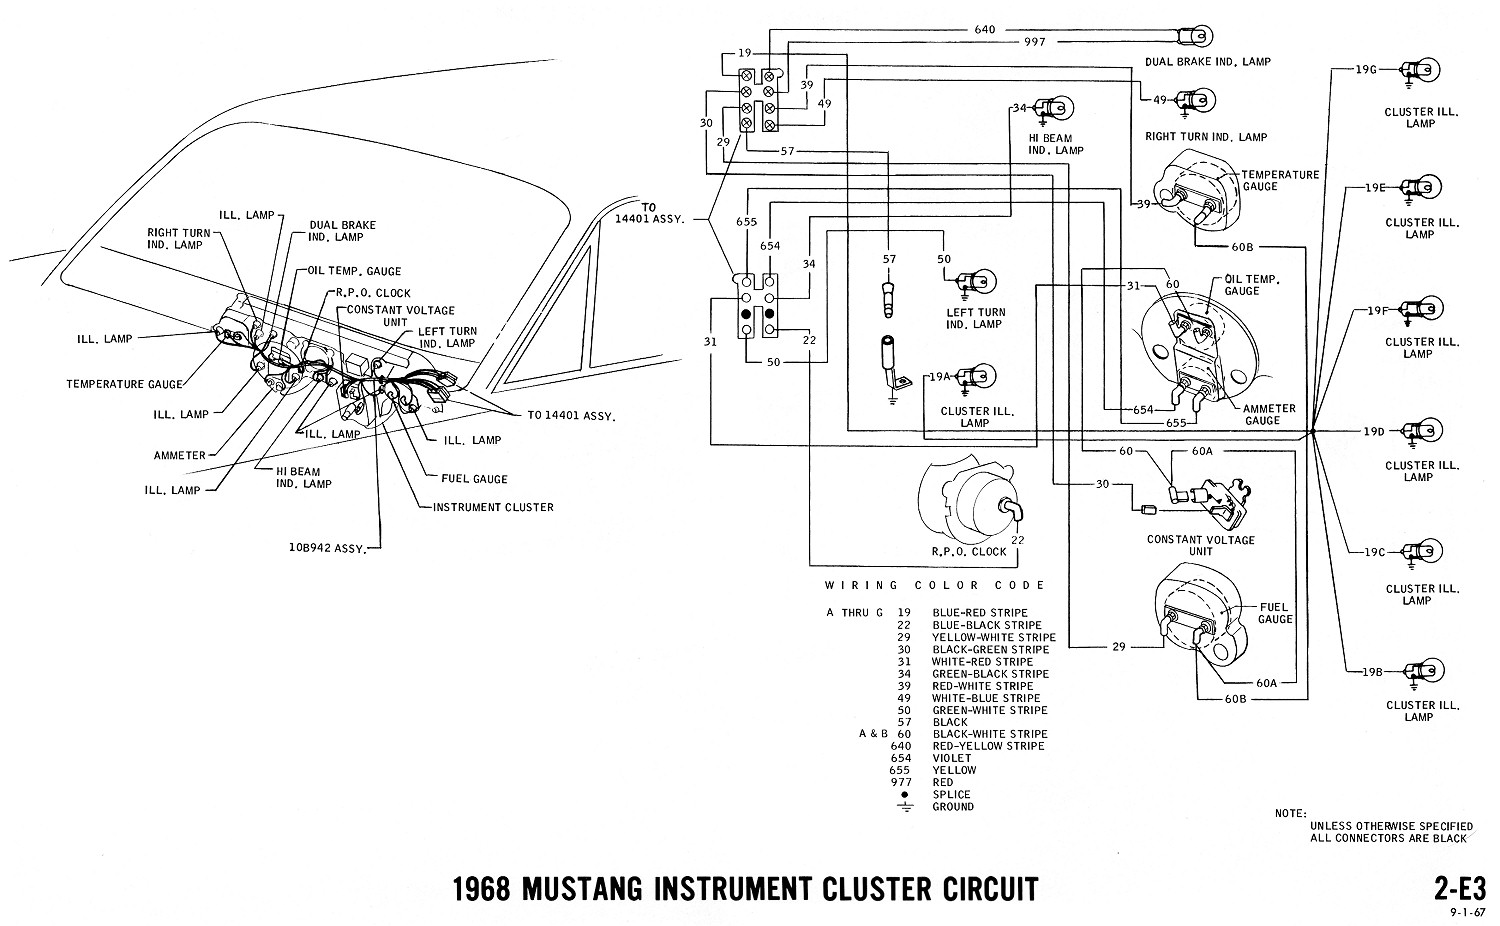 1968 mustang wiring diagrams evolving software rh peterfranza com 1967 mustang tach wiring diagram 1967 mustang color wiring diagram